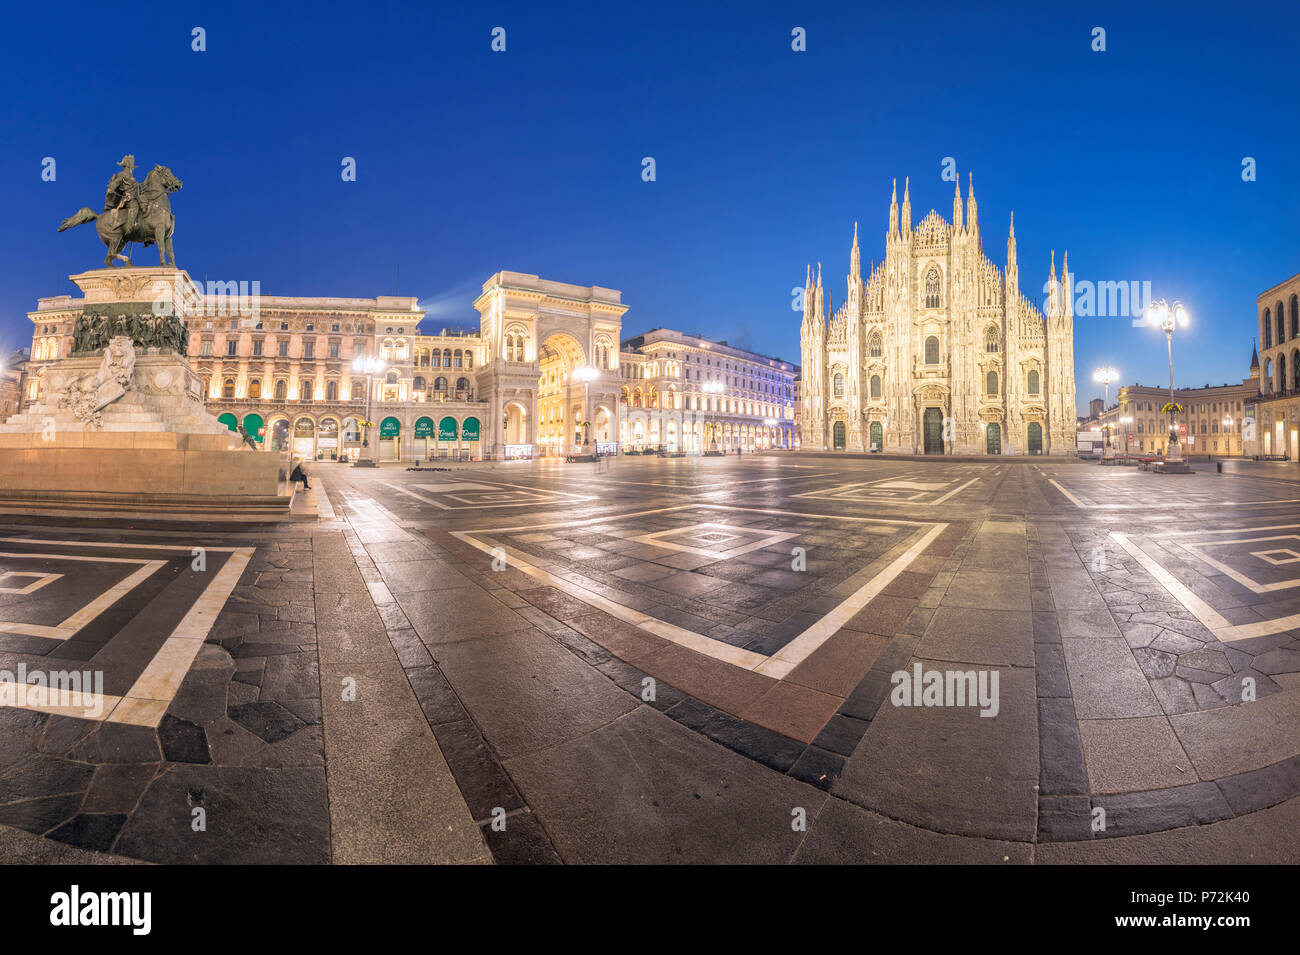 Panoramic of Milan Cathedral (Duomo) and Galleria Vittorio Emanuele II at dusk, Milan, Lombardy, Italy, Europe - Stock Image